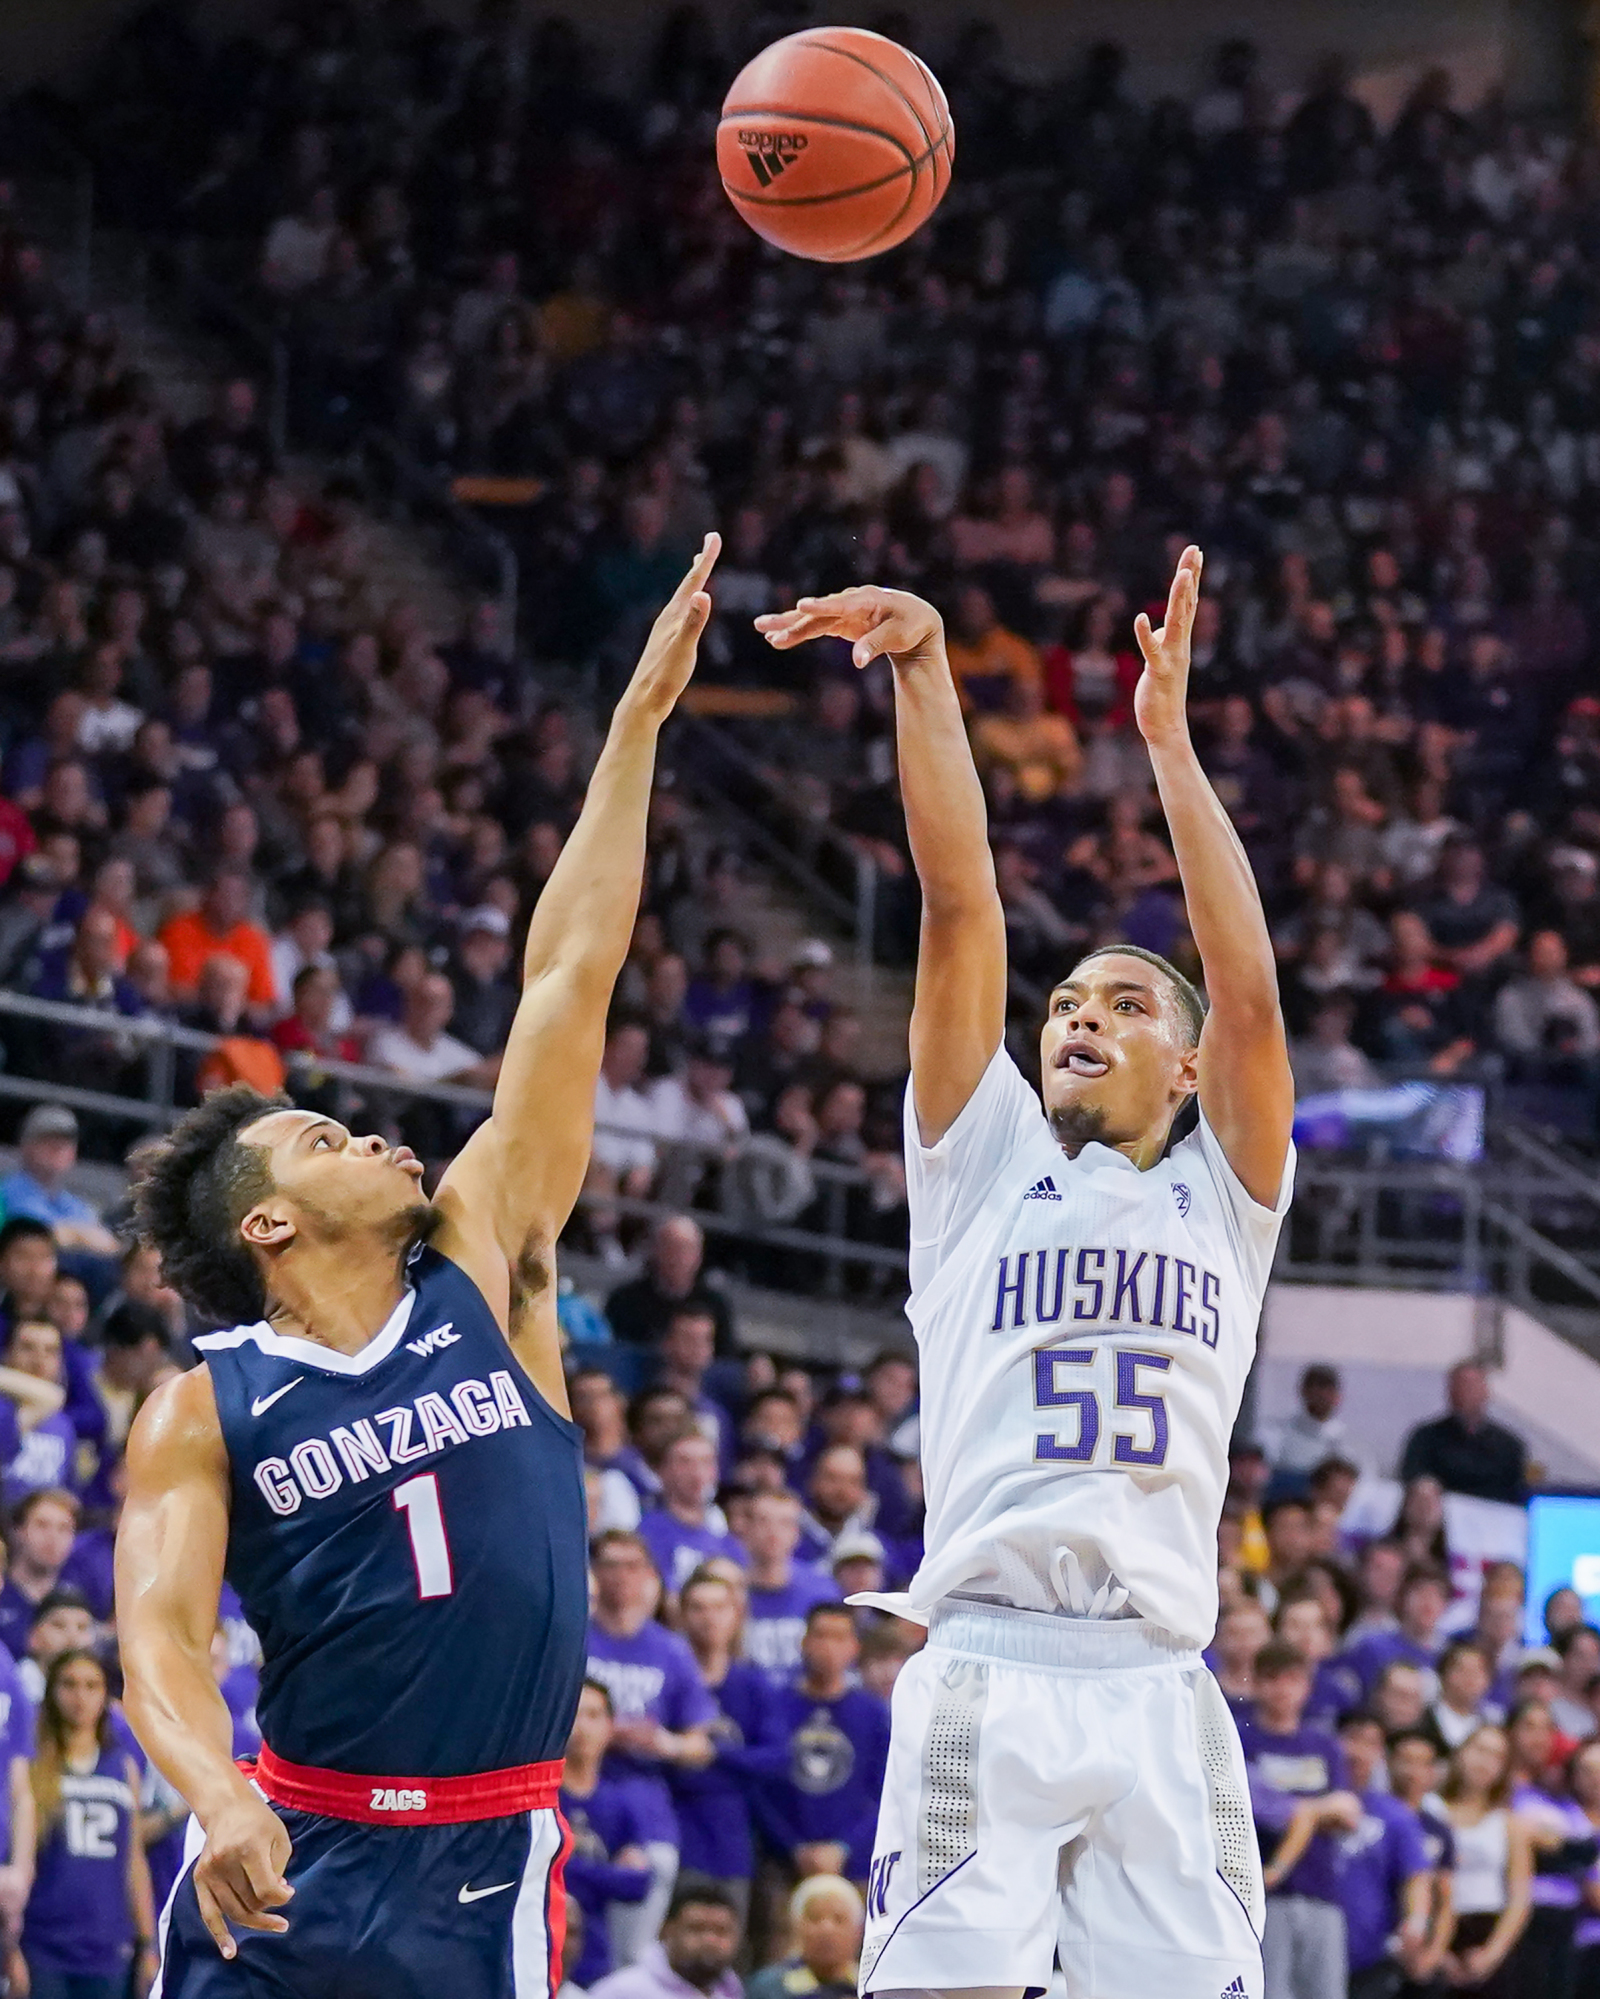 Washington basketball comes home to face Stanford